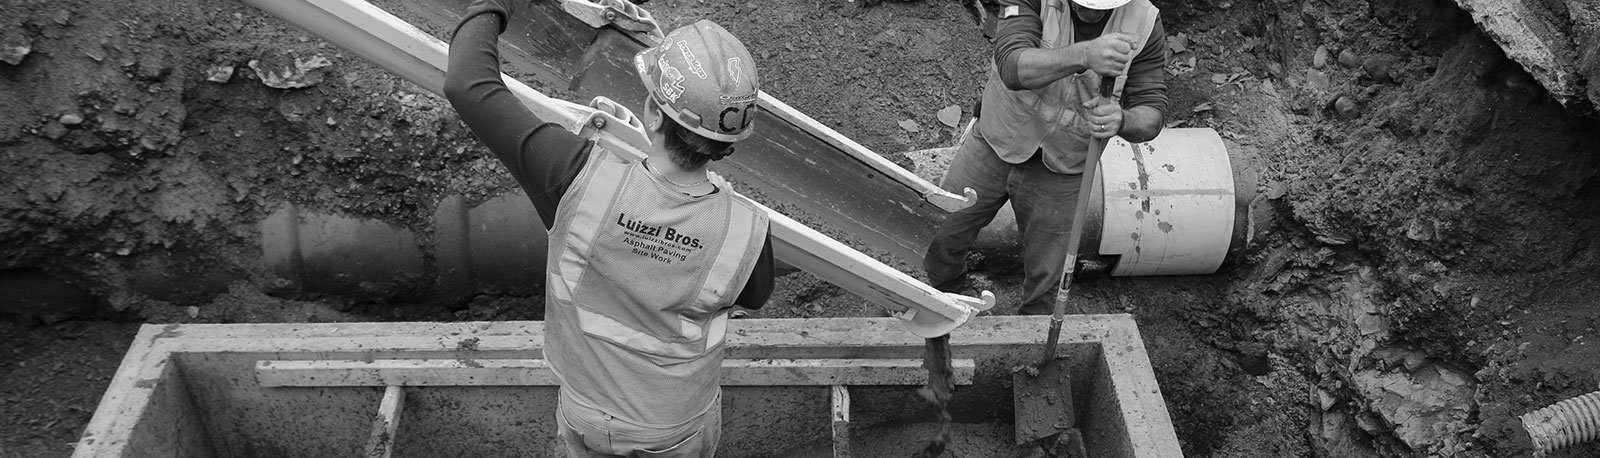 Luizzi Bros workers pouring cement